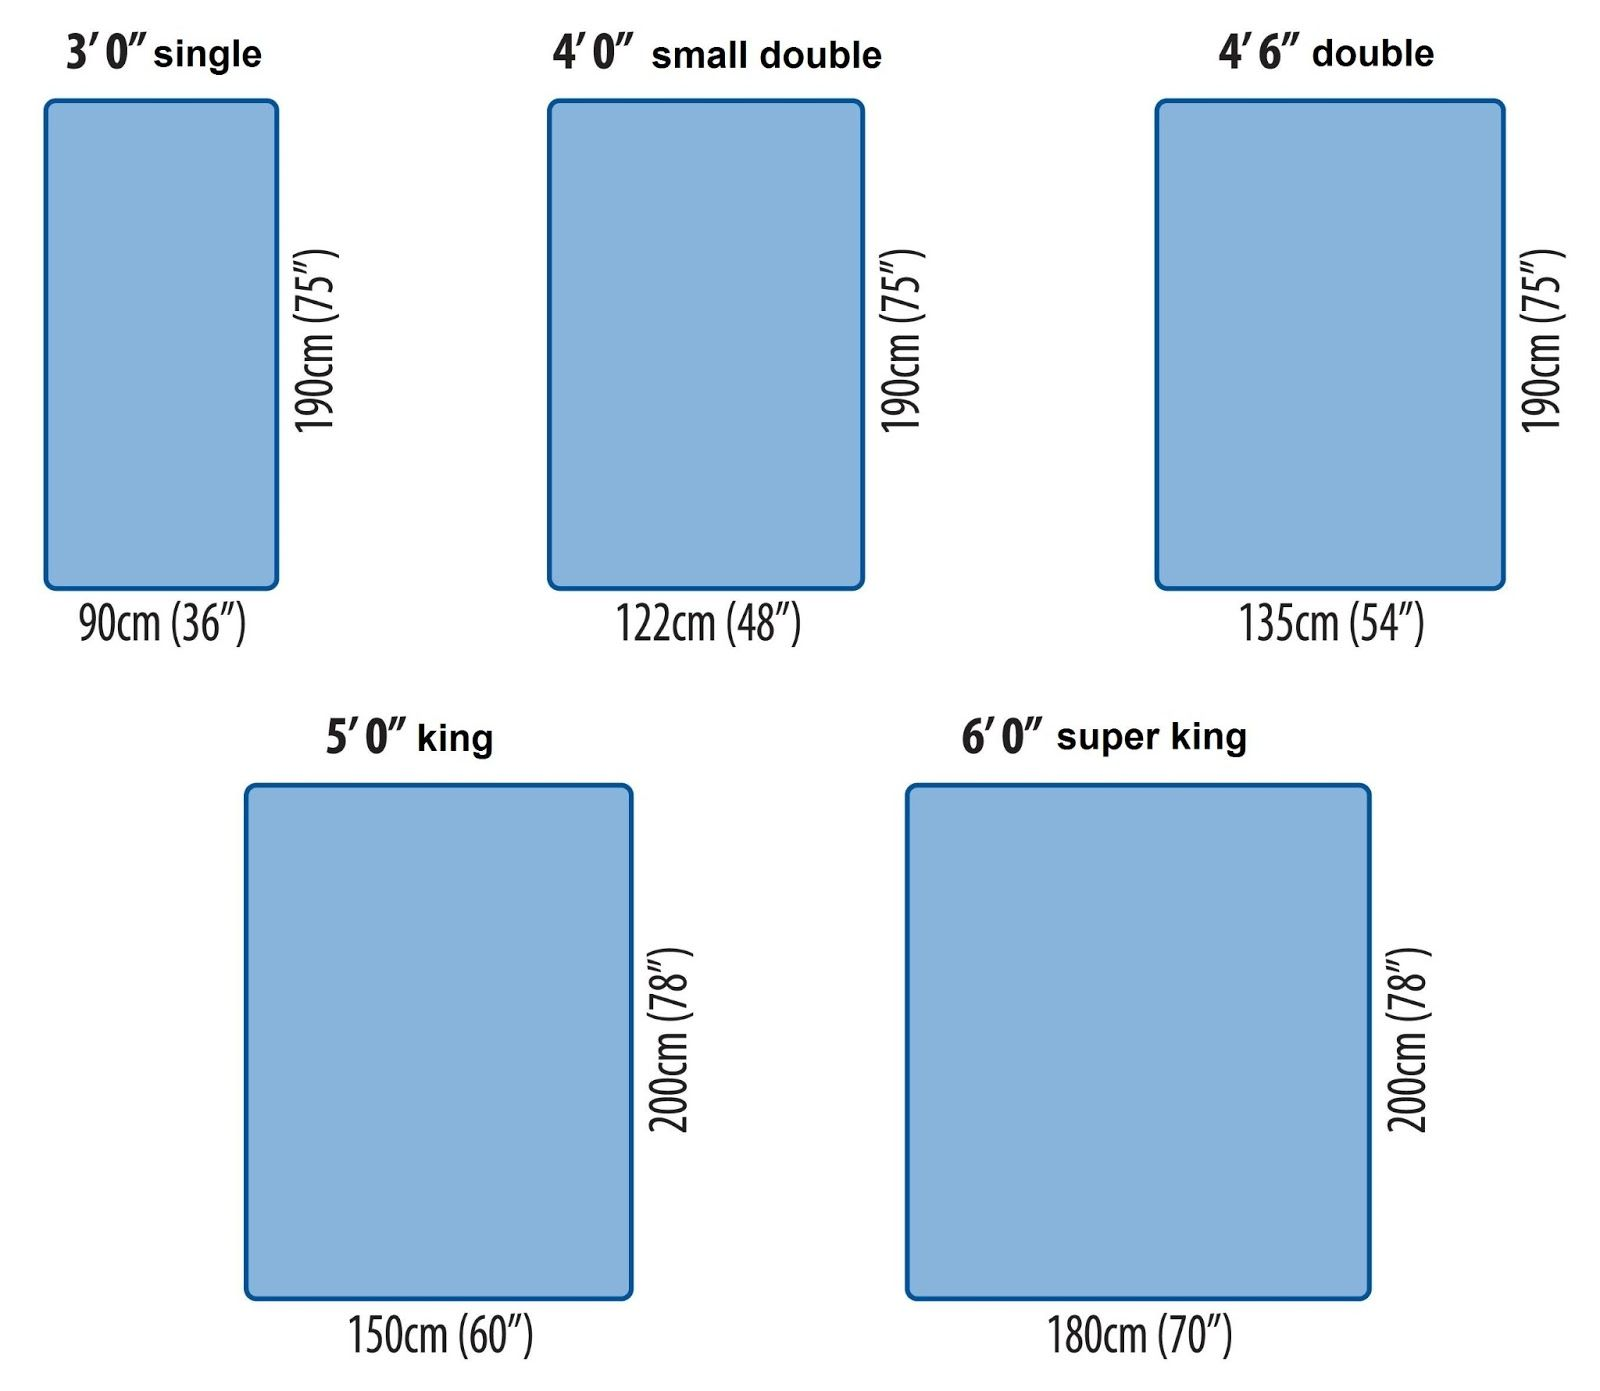 Queen Size Bed Dimensions Google Search Bed Sizes Bed